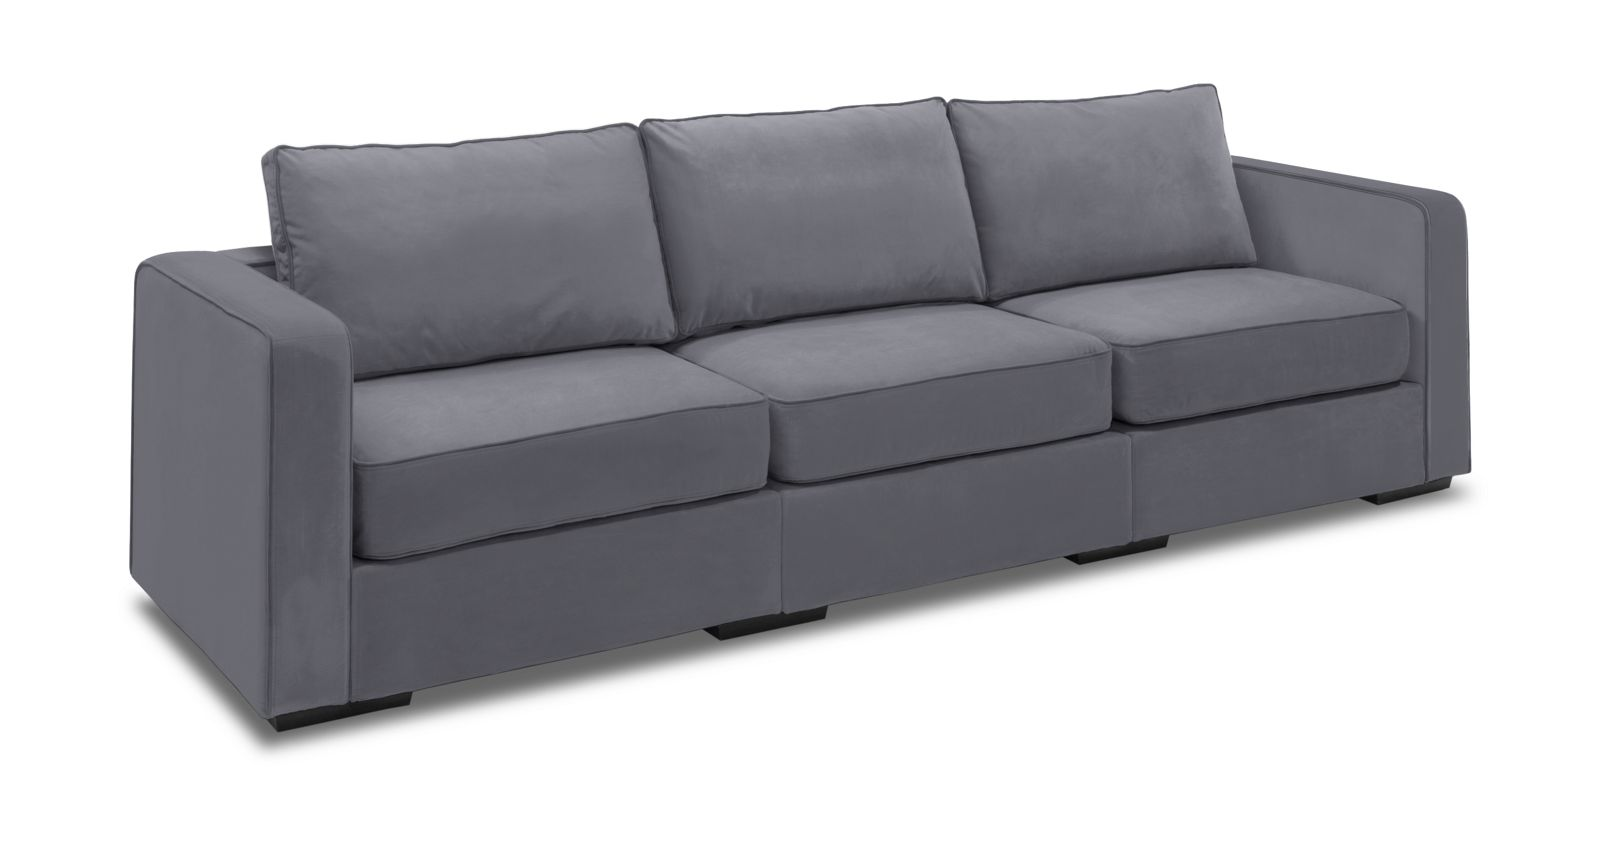 modular sectional sofa 3 seats 5 sides lovesac - Lovesac Sofa